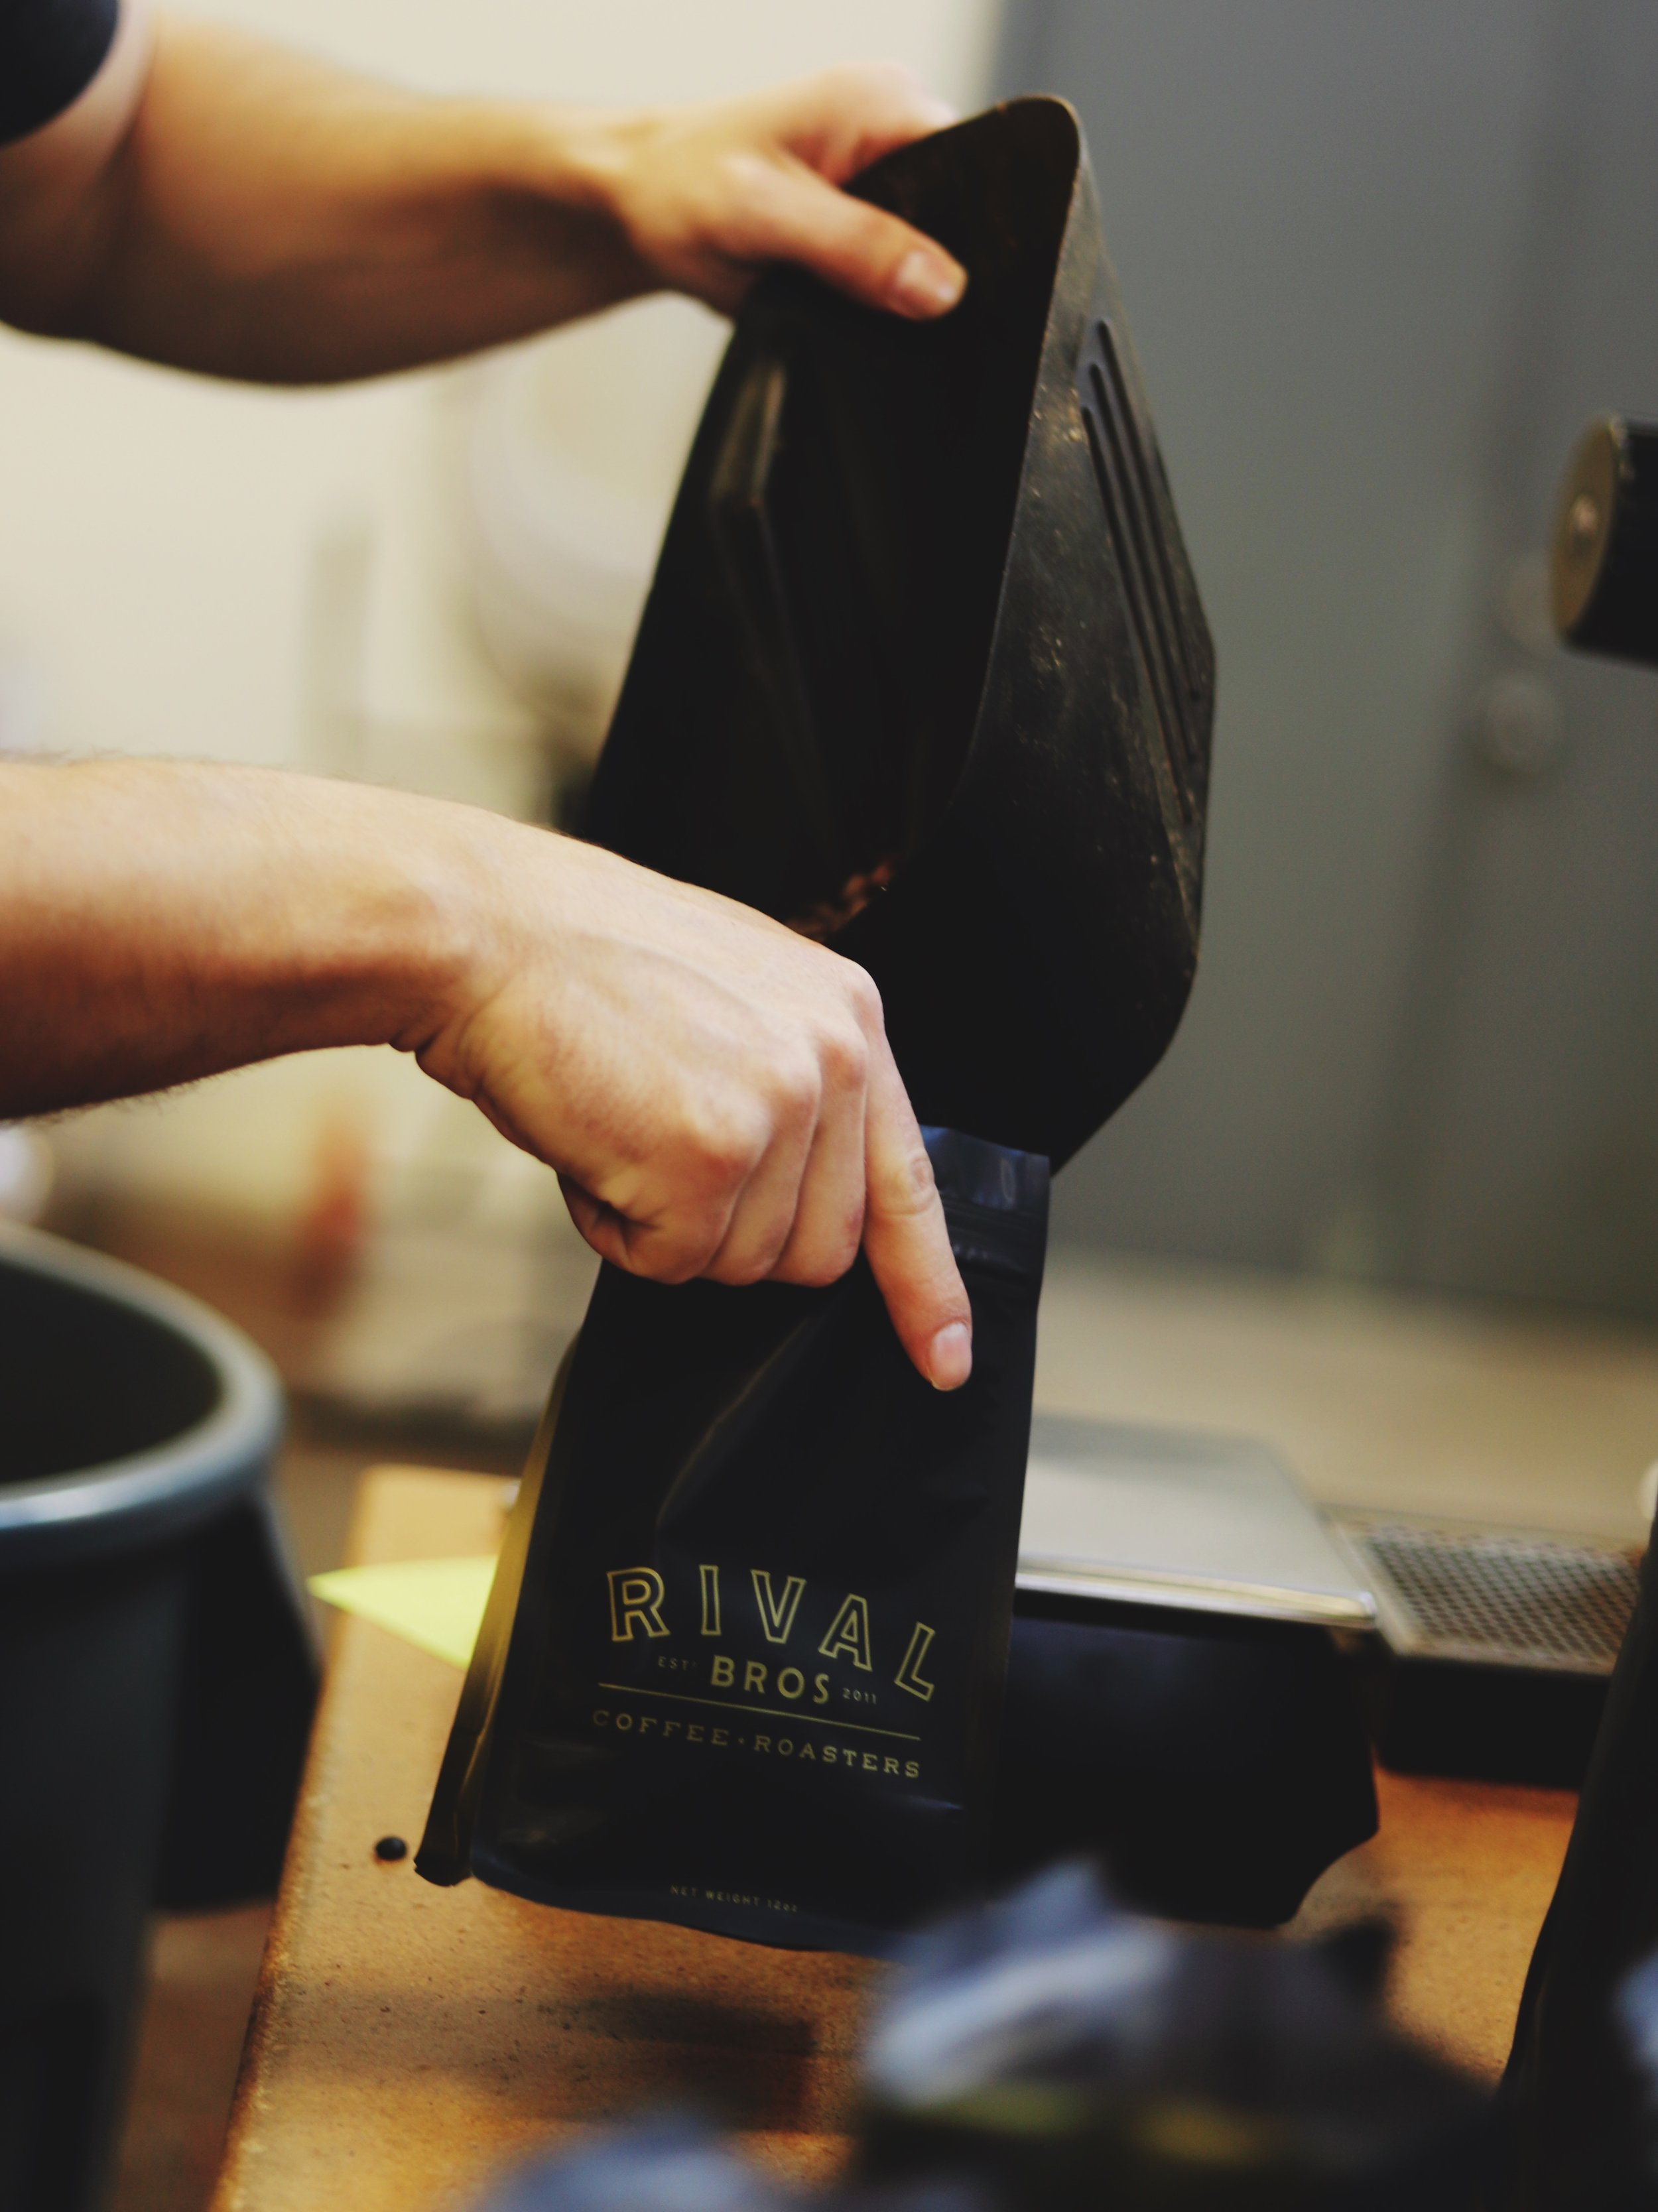 Rival Brothers Coffee Roasters